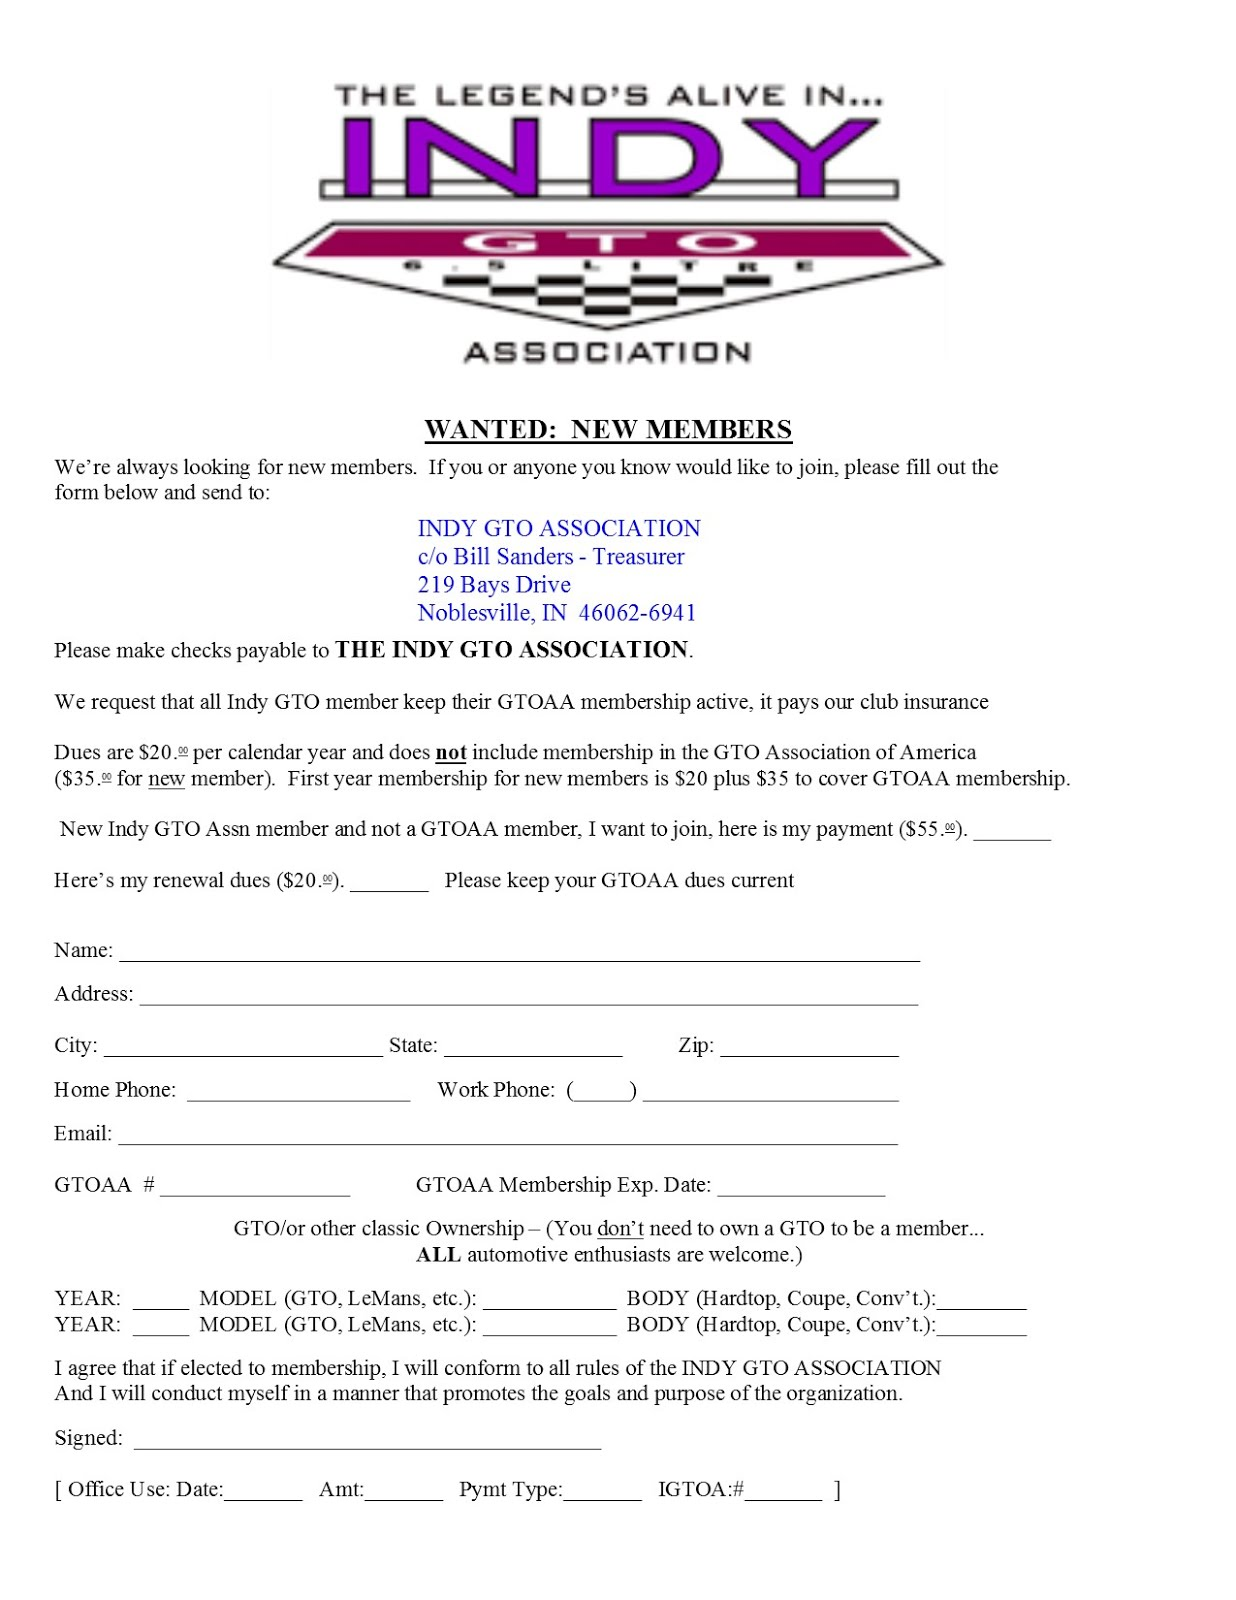 INDY GTO ASSOCIATION MEMBERSHIP FORM   --   Right Click to Open and Print